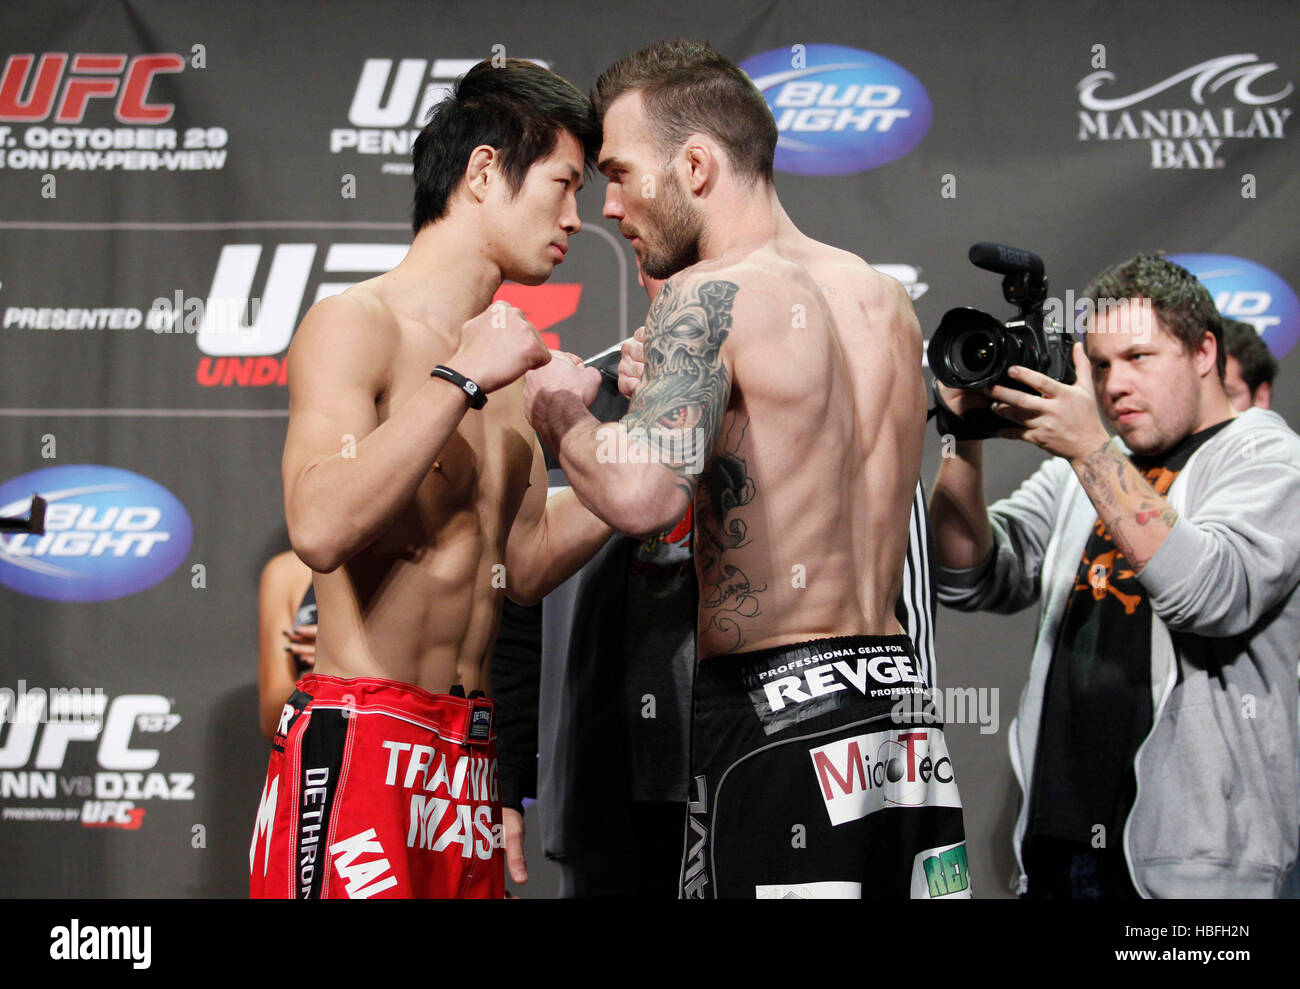 UFC fighters Hatsu Hioki of Japan, left, and George Roop square off